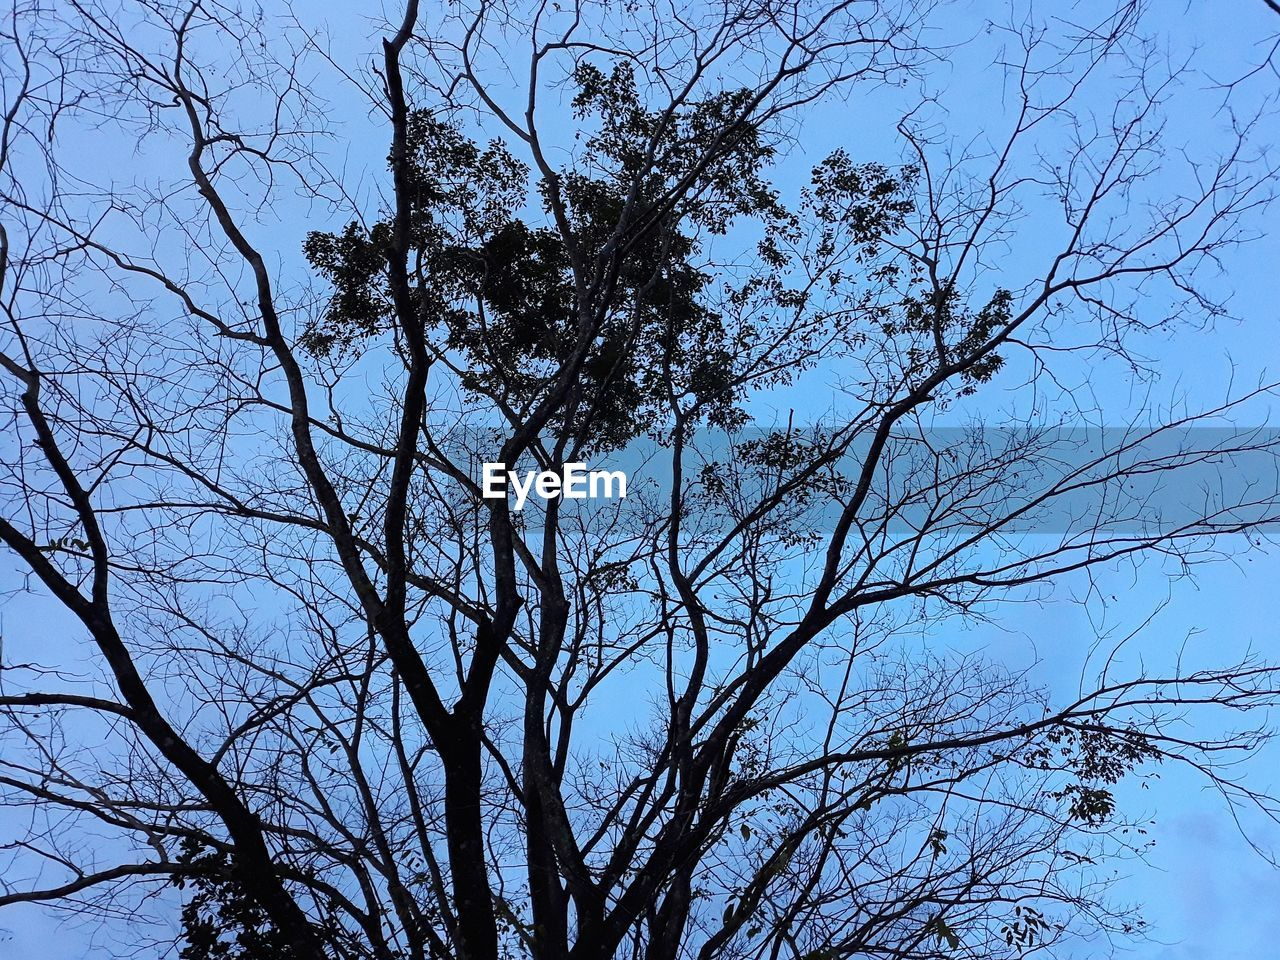 branch, tree, low angle view, nature, bare tree, beauty in nature, no people, outdoors, day, sky, growth, tranquility, clear sky, scenics